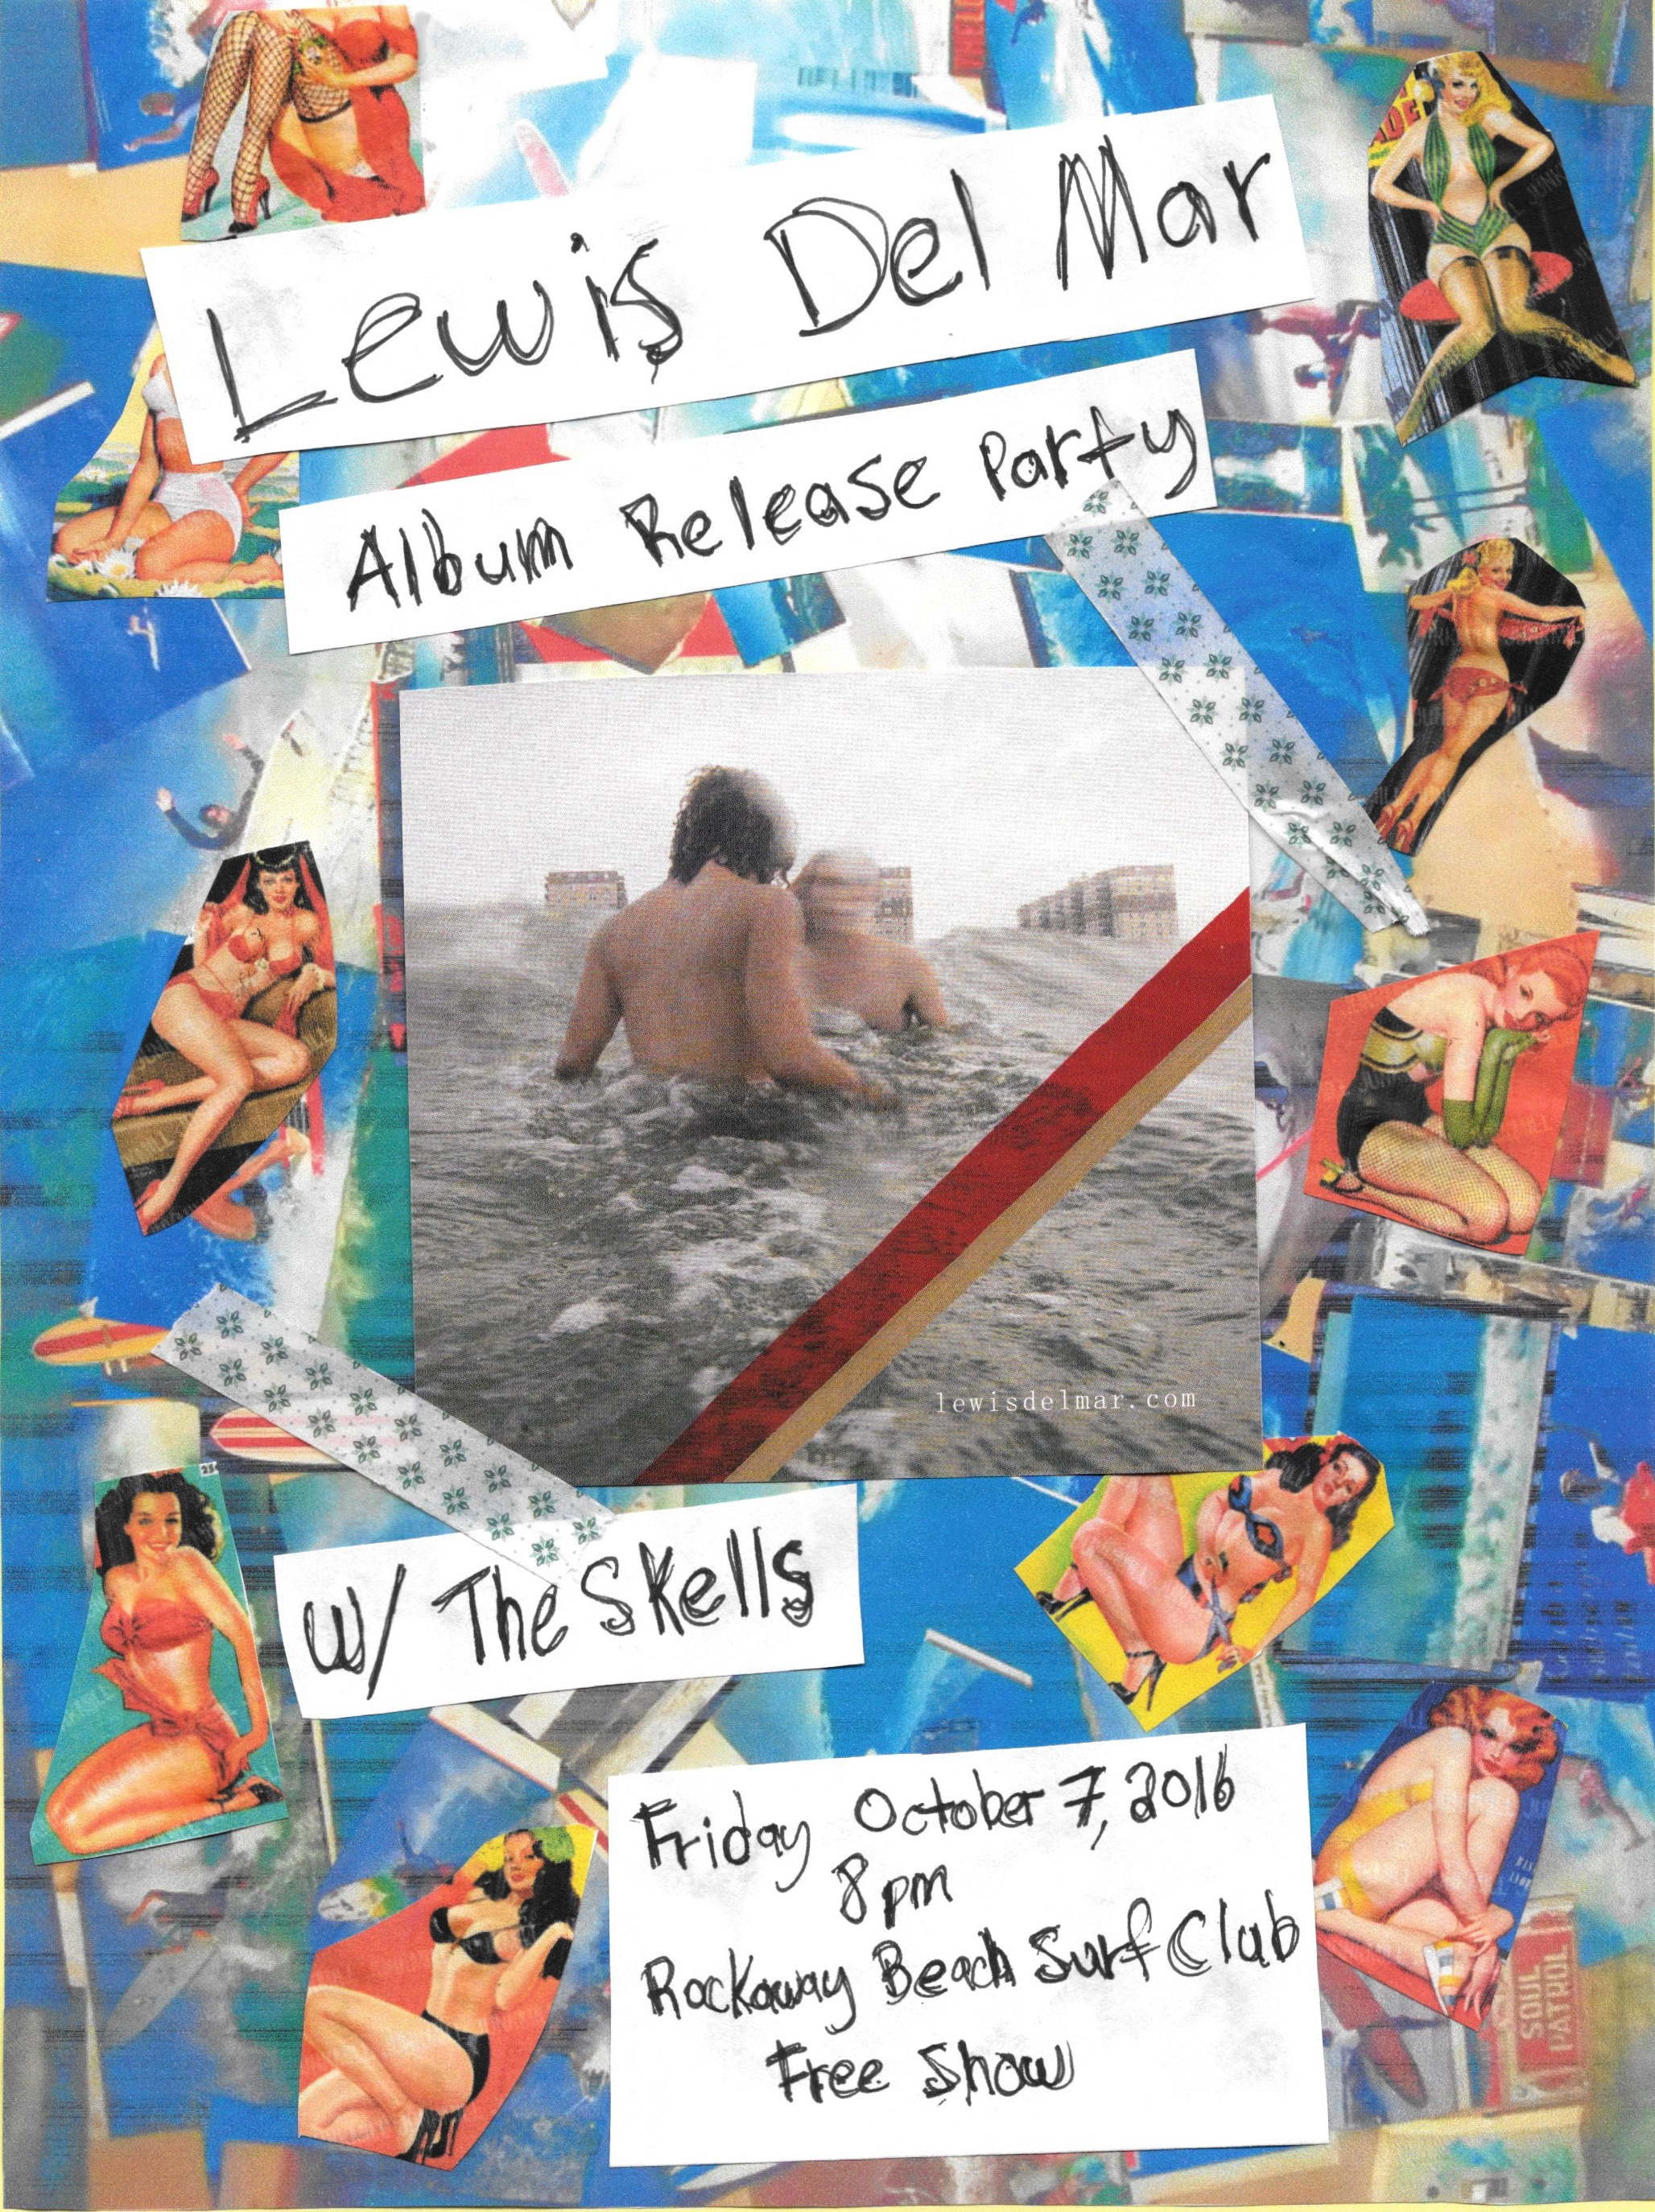 lewis del mar album release party rockaway beach surf club